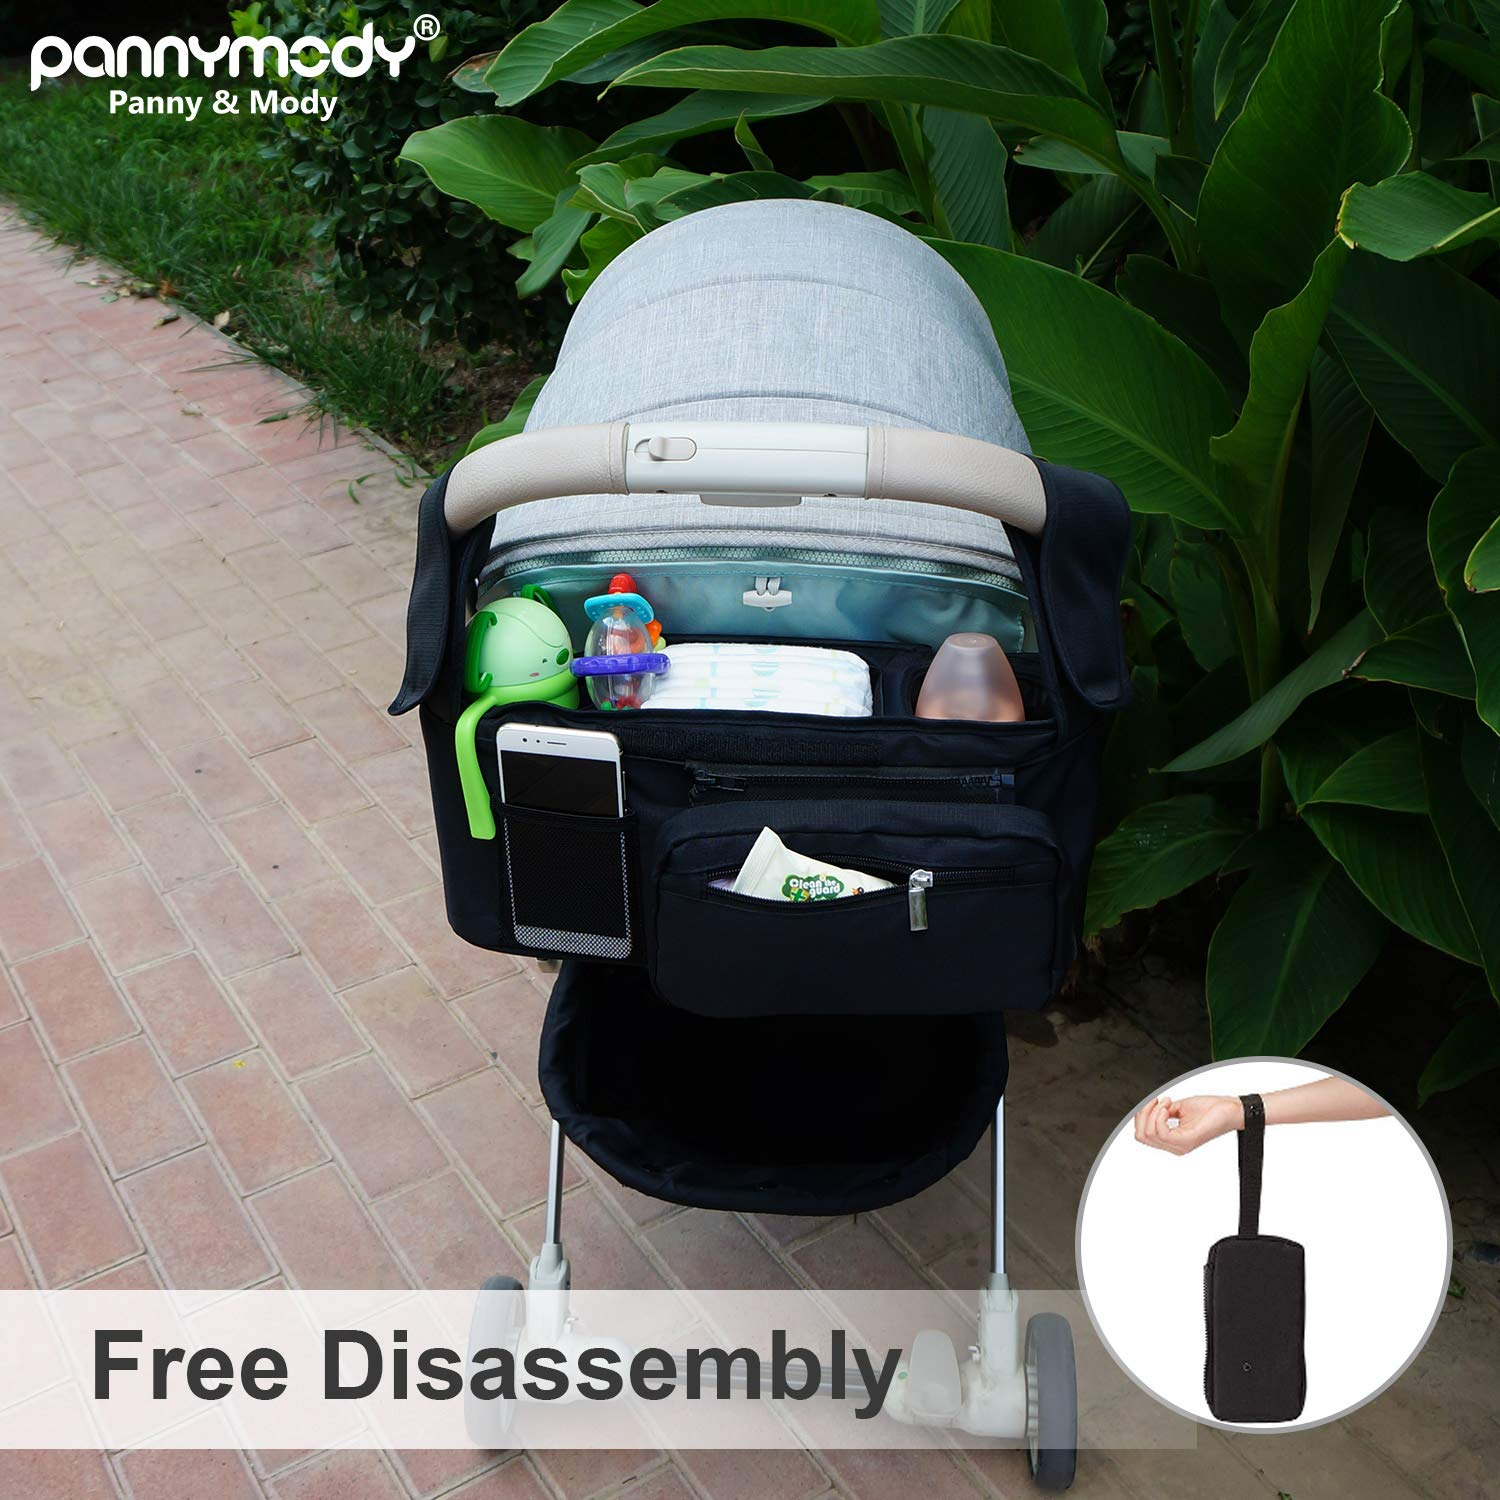 Detachable Phone Bag /& Shoulder Strap Secured Fit Universally fit for All Brand Baby Strollers Panny /& Mody Upgrade Stroller Organizer with Cup Holders Extra Storage Easy Installation